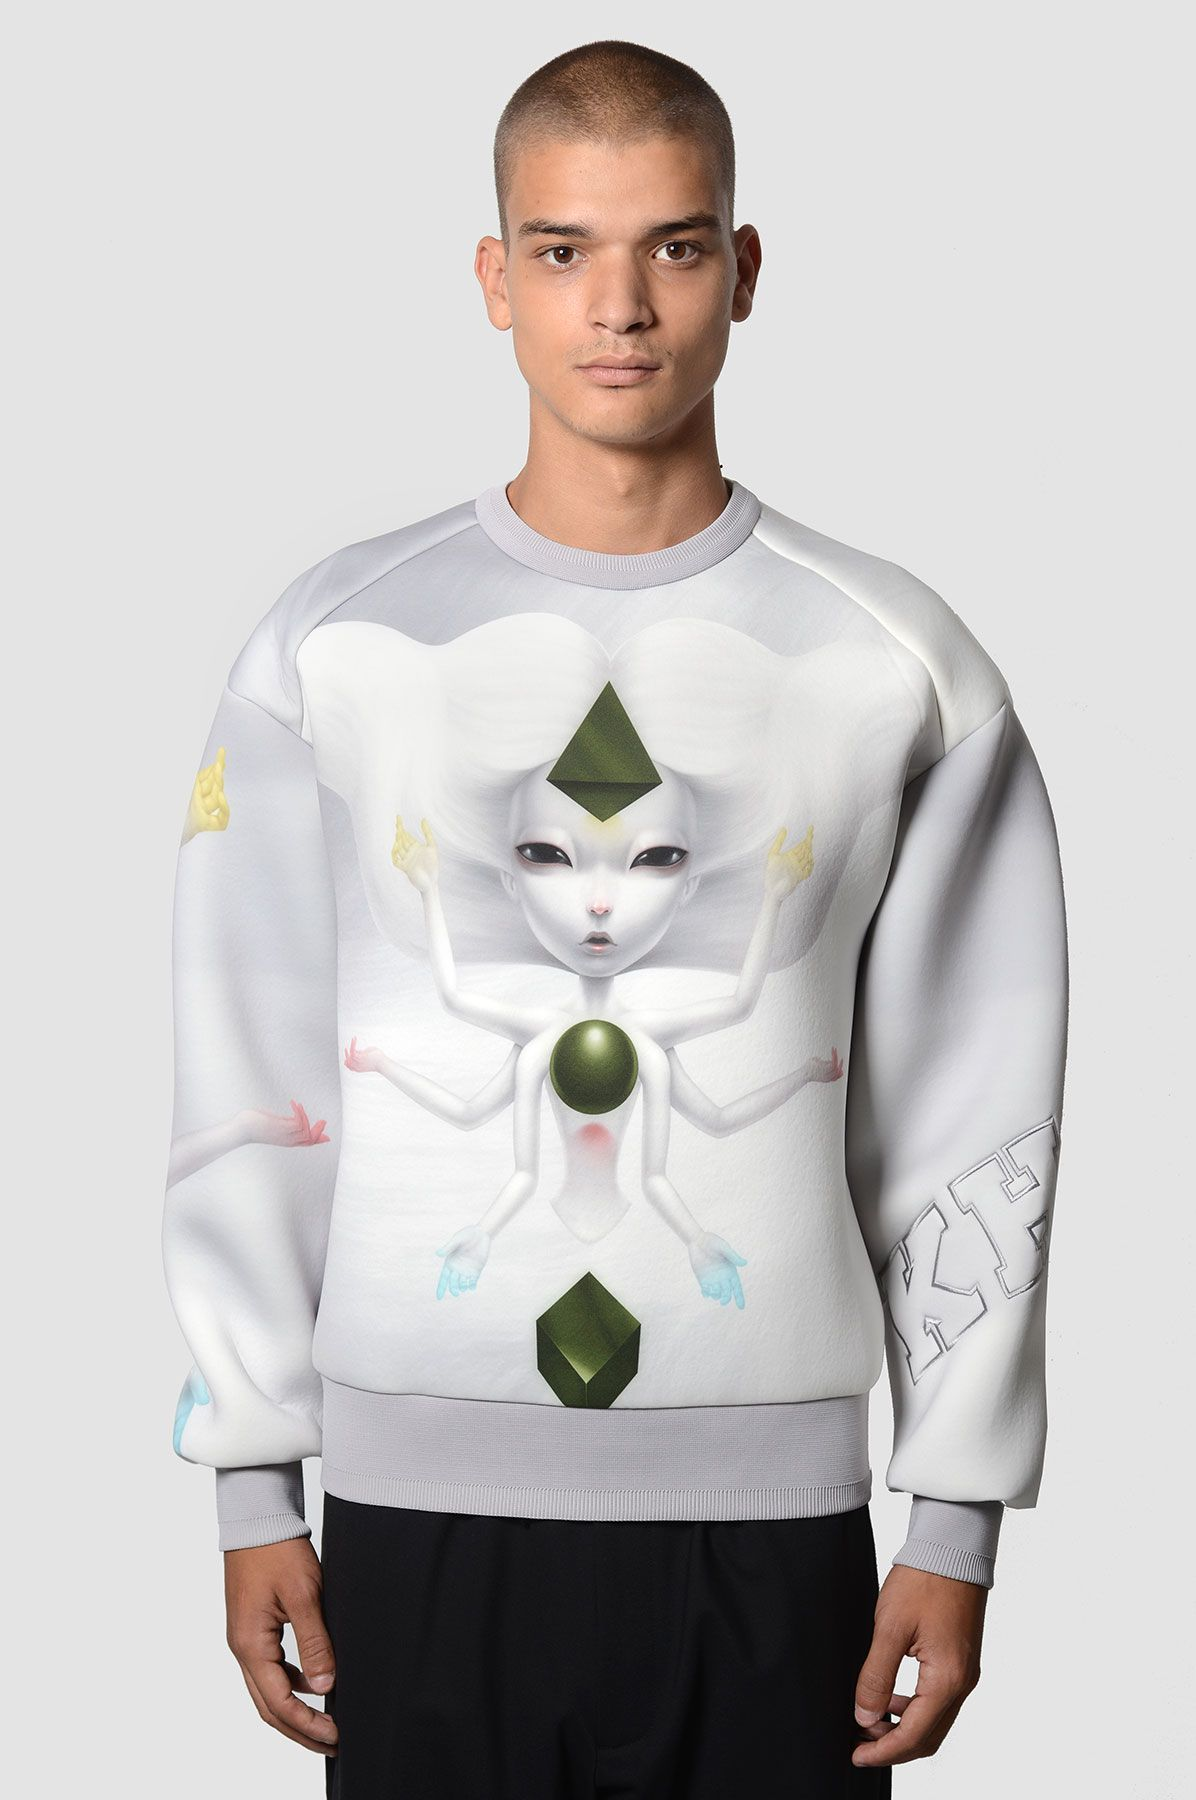 J x Paolo Pedroni The Creator Grey Neoprene Sweatshirt